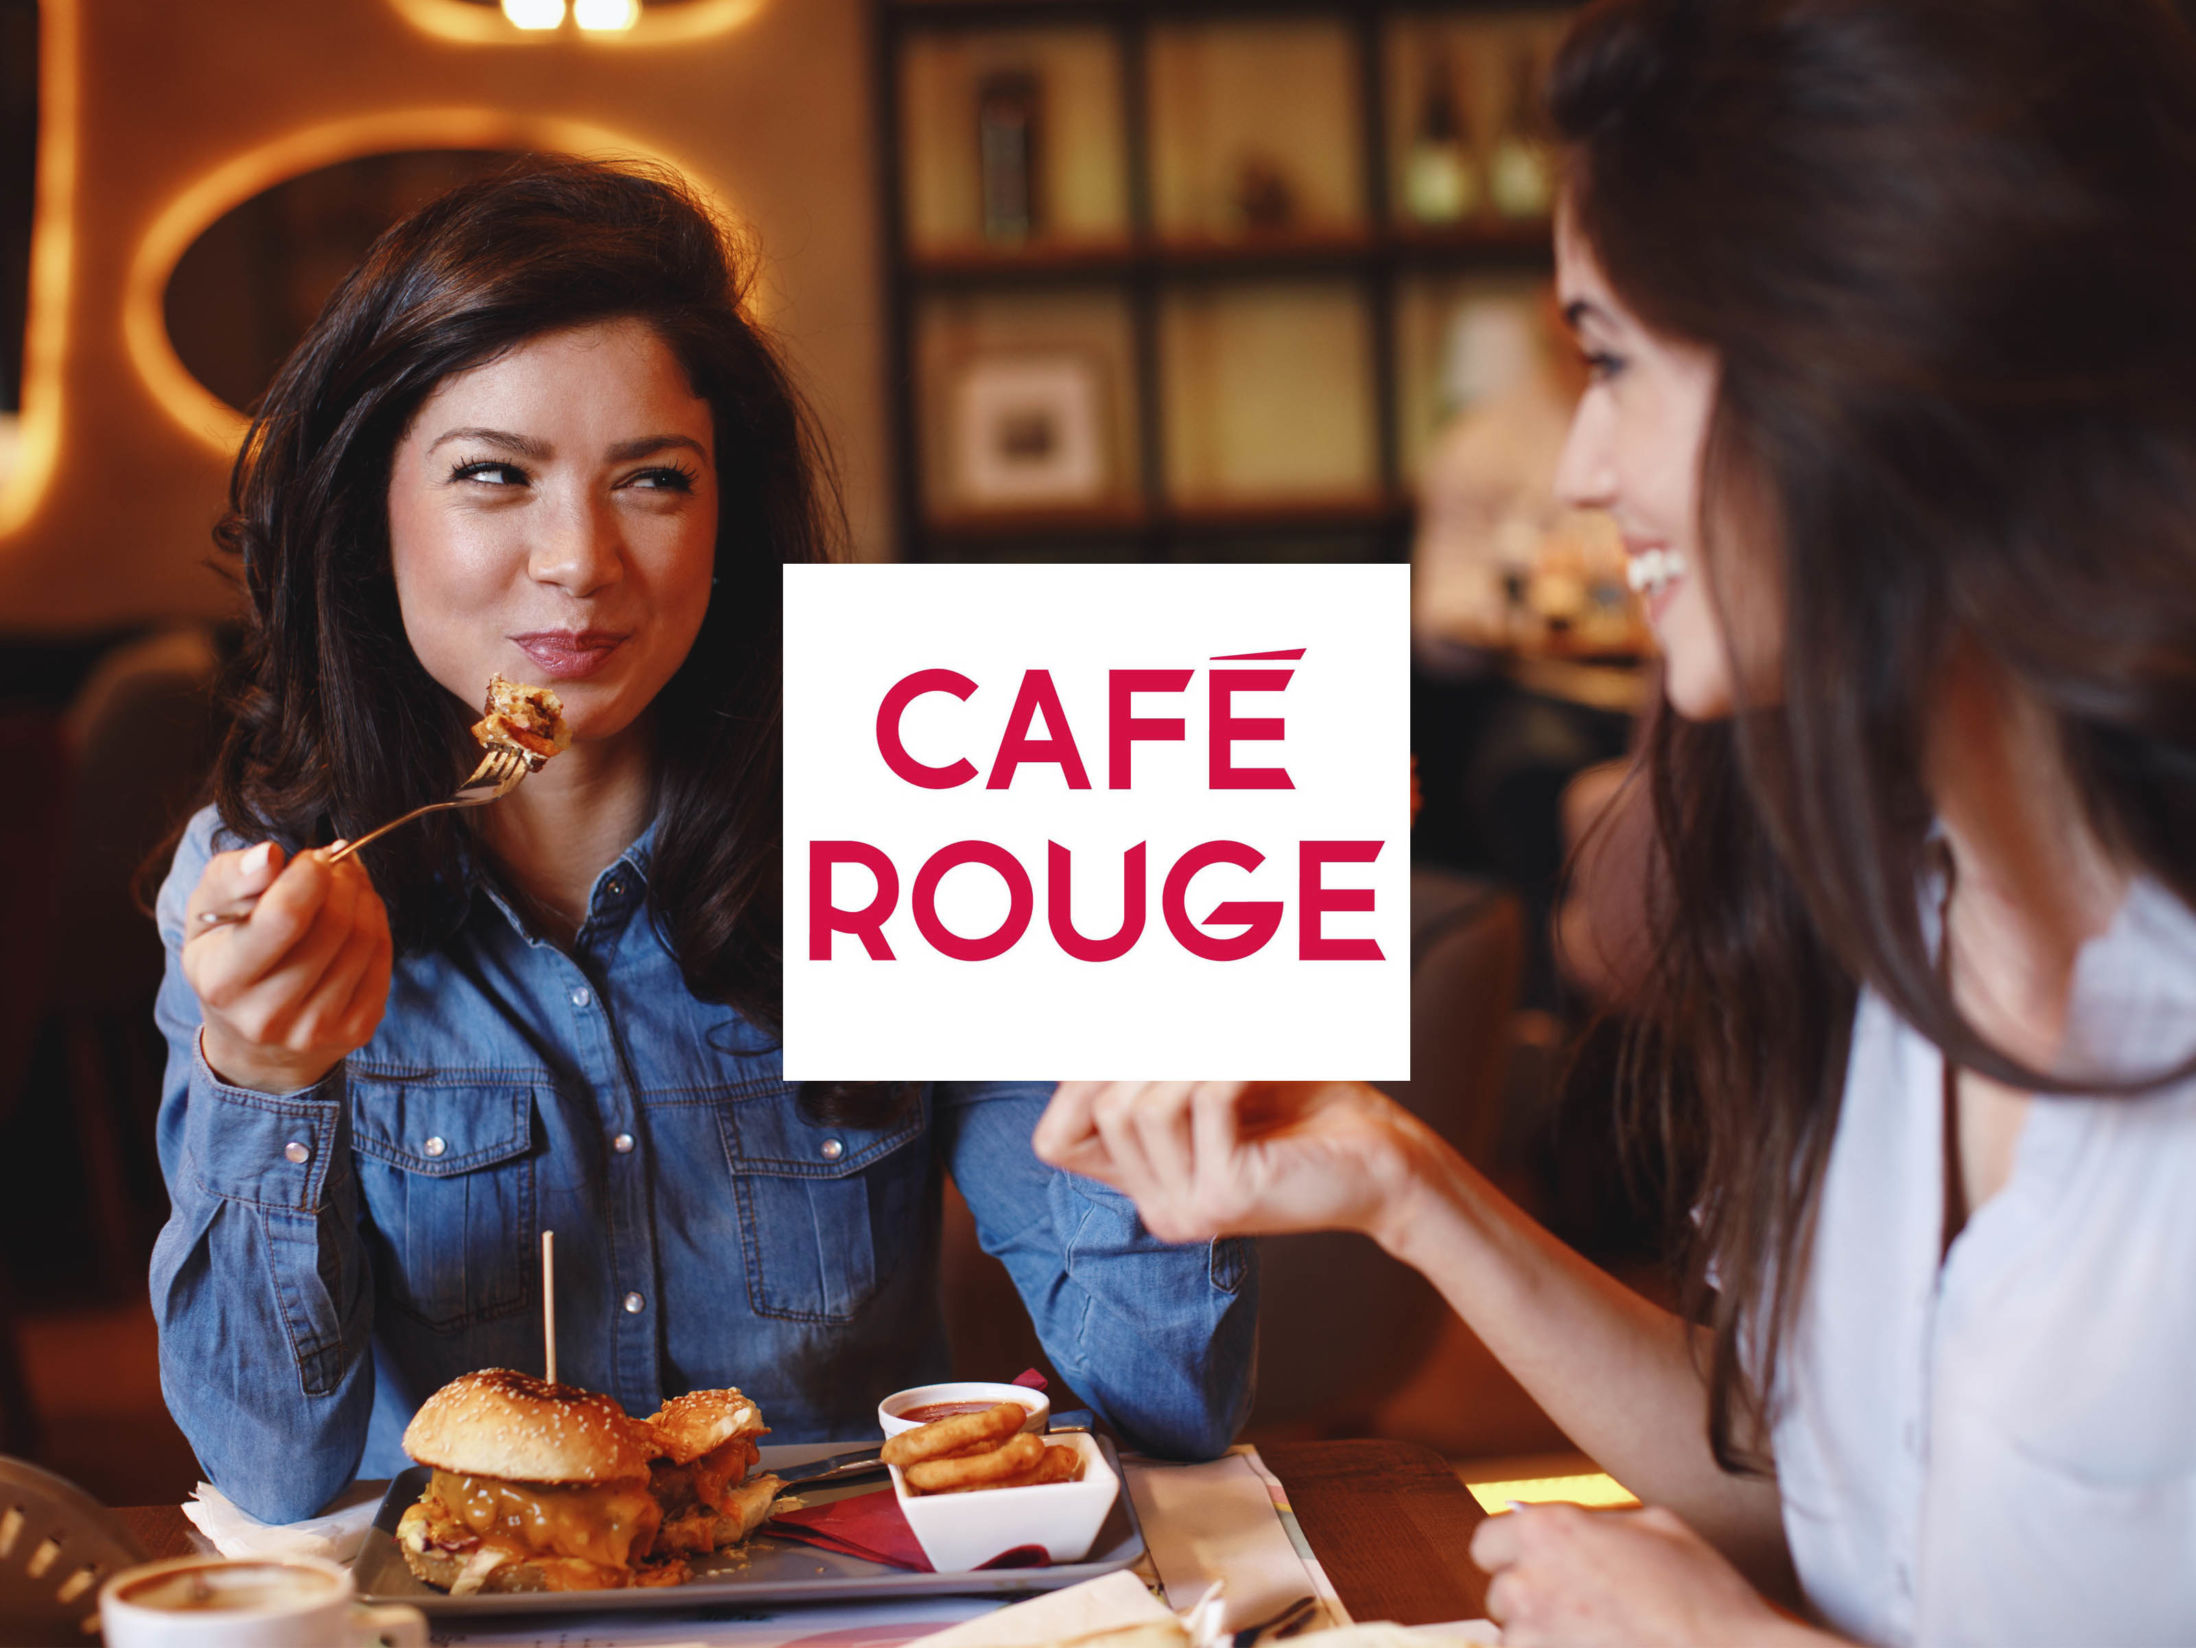 French Meal - Café Rouge